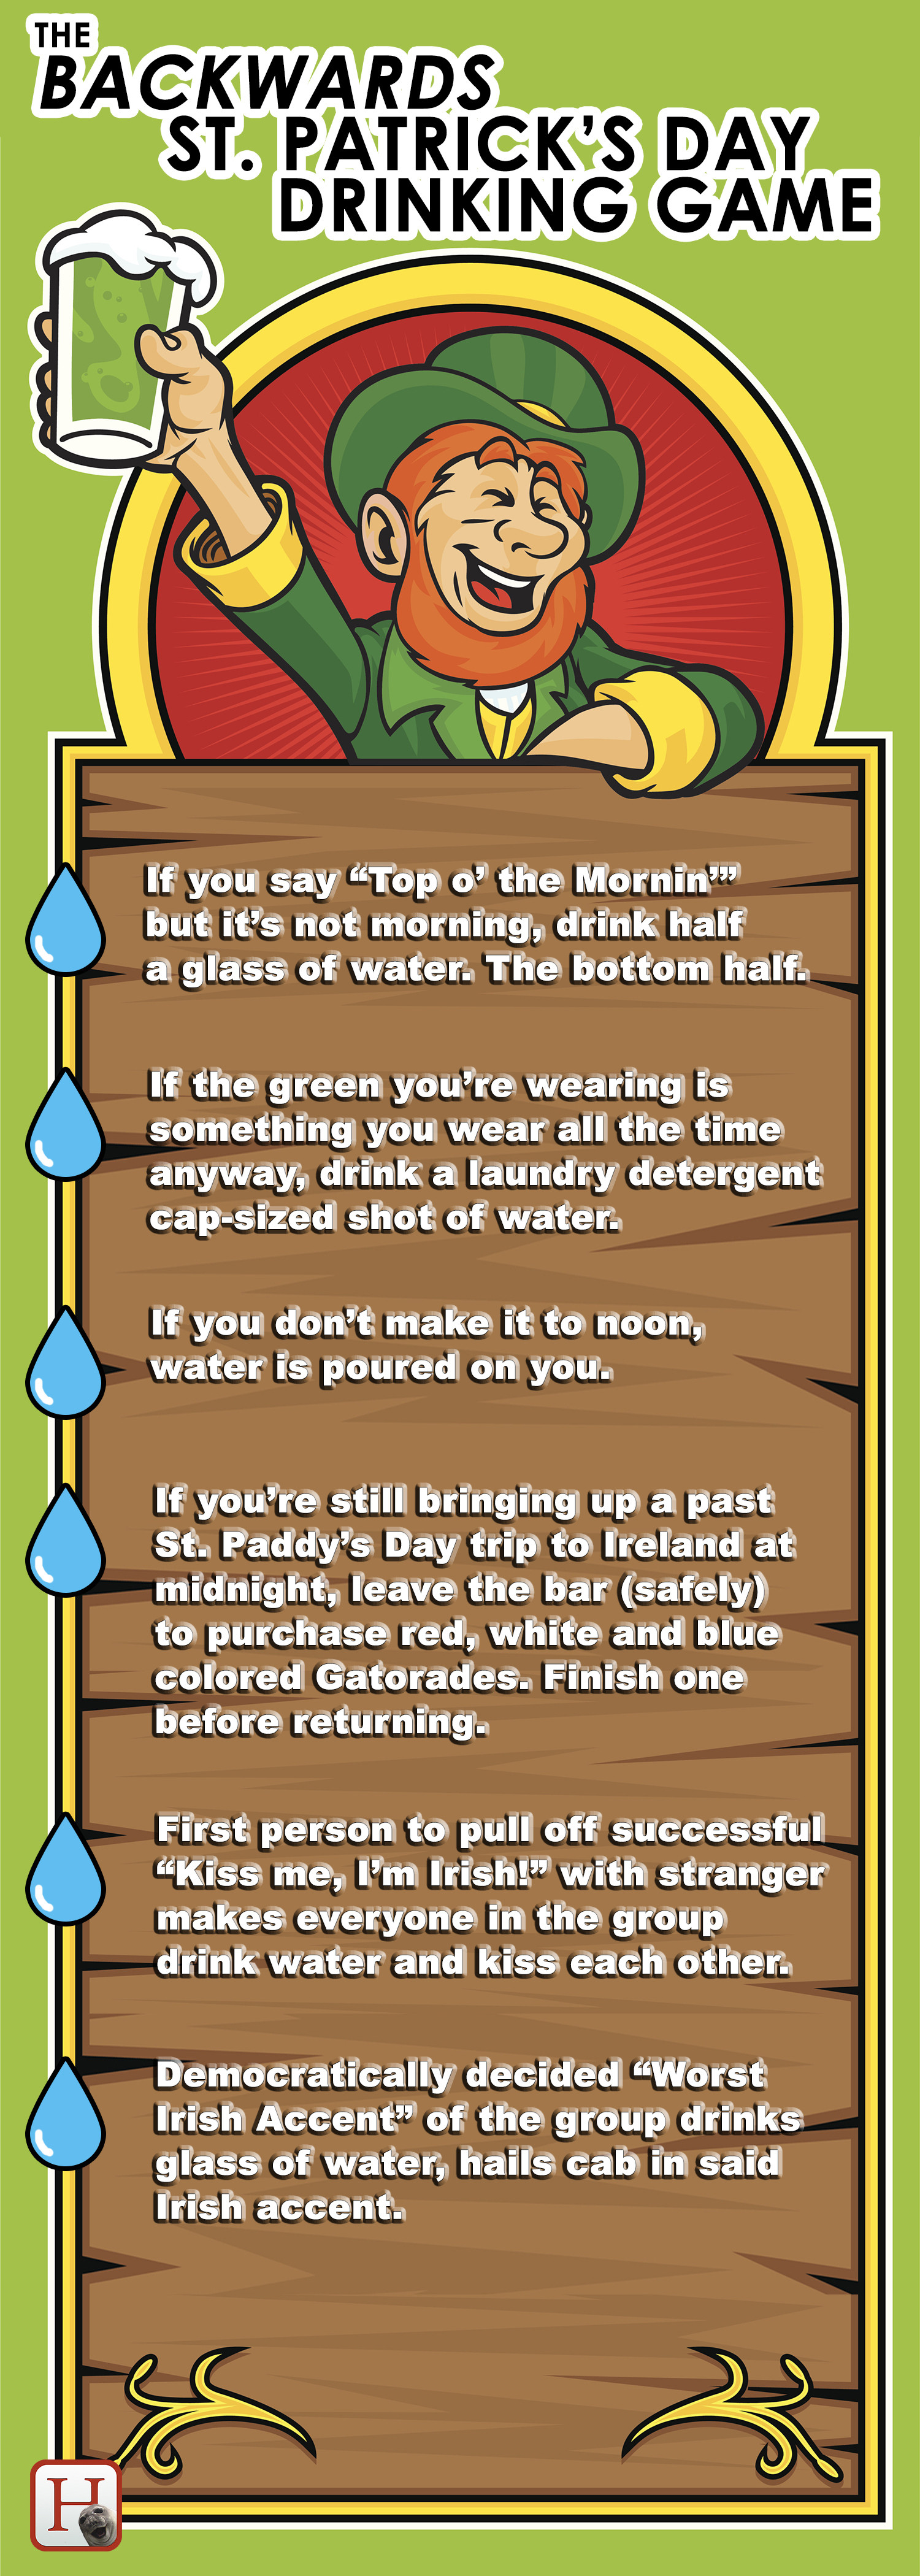 5e82b6fa5 The Only St. Patrick's Day Drinking Game That Could Actually Prevent ...